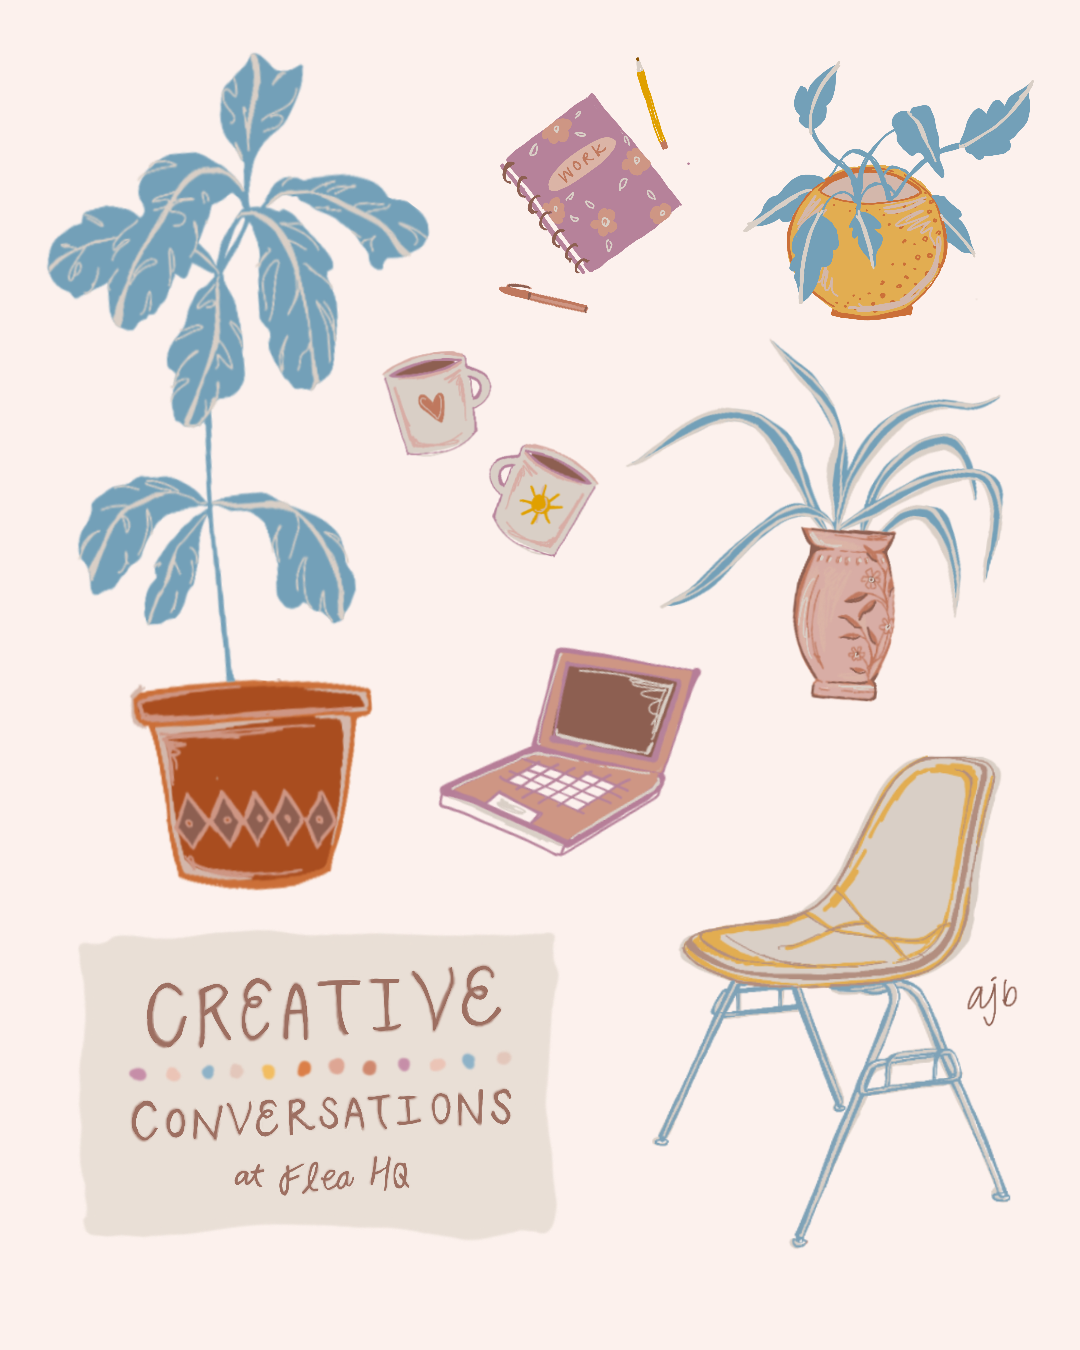 JULY EVENT | Friday, JULY 26th |open coworking with team flea between 10am - 5pm, lunch with our featured artist, buy some cool things, too. - Lunch: TBALunch Discussions: TBALocation: TBAPop-Up Business: TBA